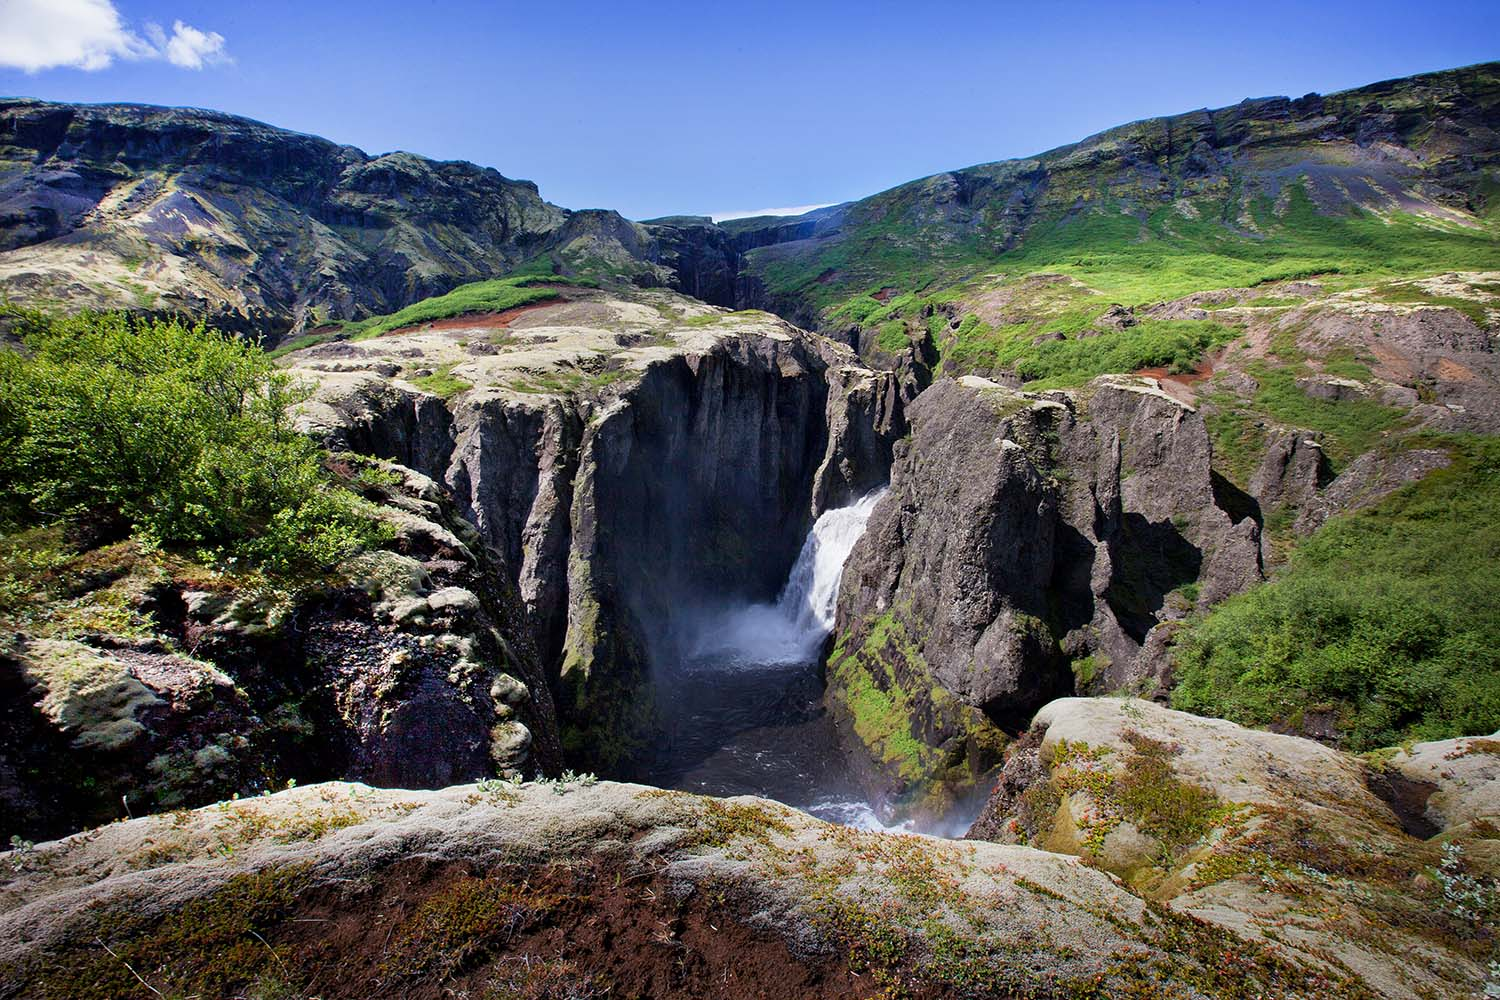 Stunning waterfalls and gorges